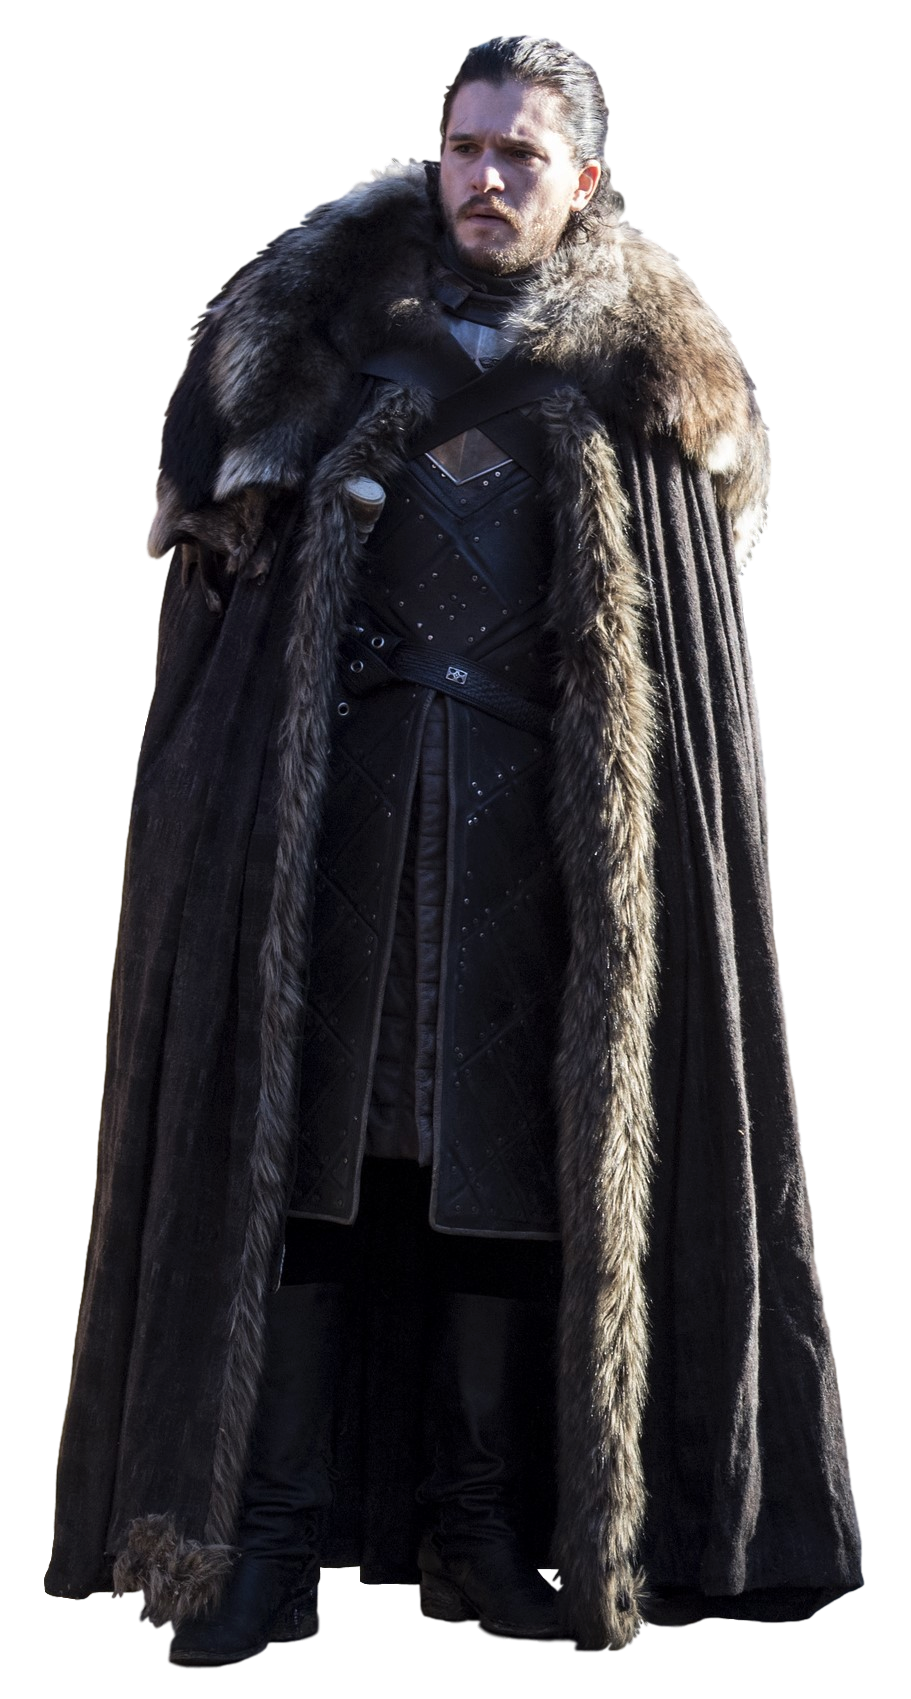 Game of Thrones - Jon Snow Costume - Valyrian Steel